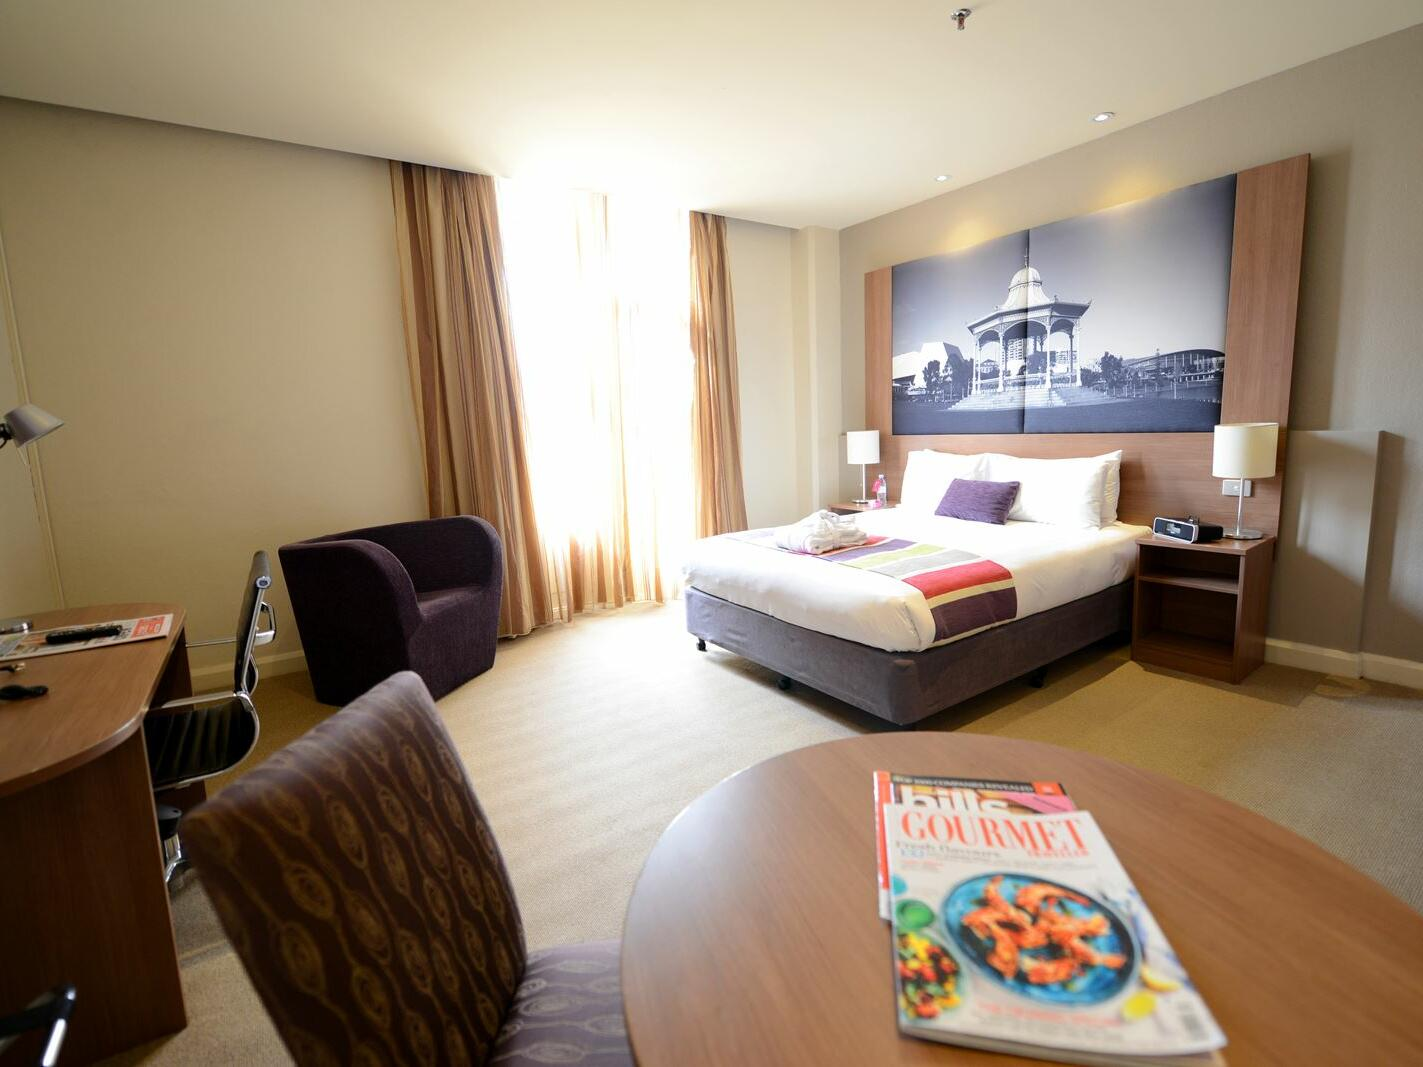 Executive Room with a Queen bed & furniture in Grosvenor Hotel